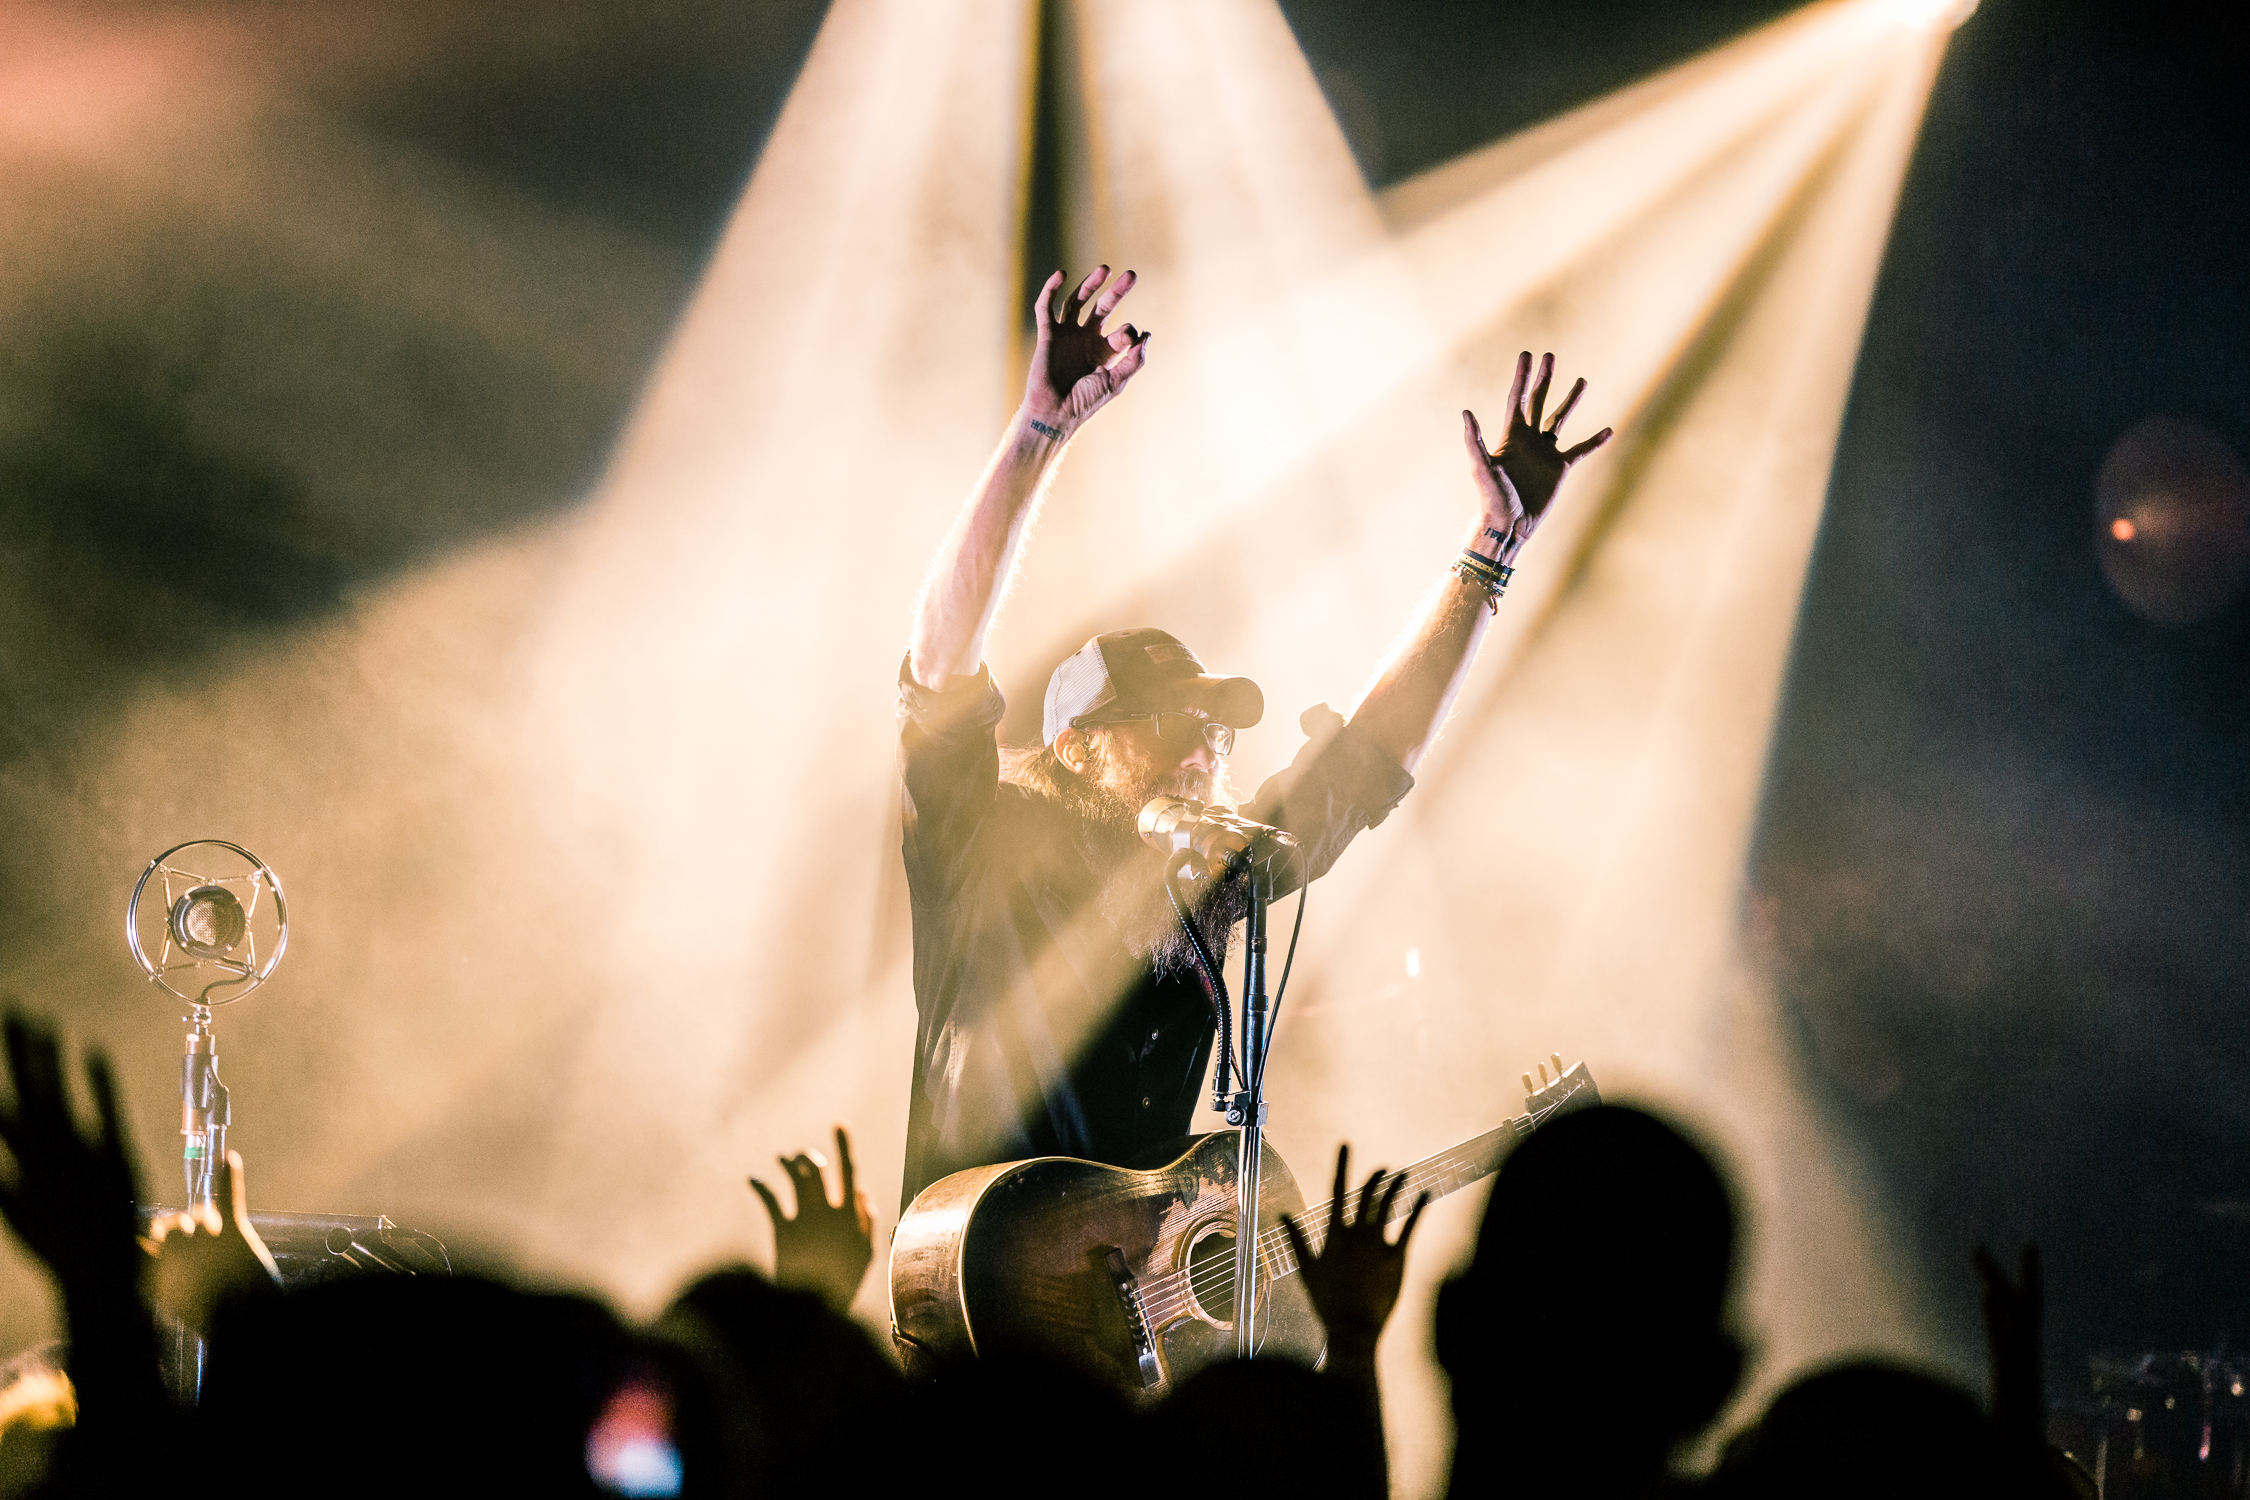 In my opinion this is the stronger image because of the parallel between David Crowder's raised hands and the single audience member's who is perfectly in line with my camera. This creates more emotion in the image and conveys more of a story/meaning.